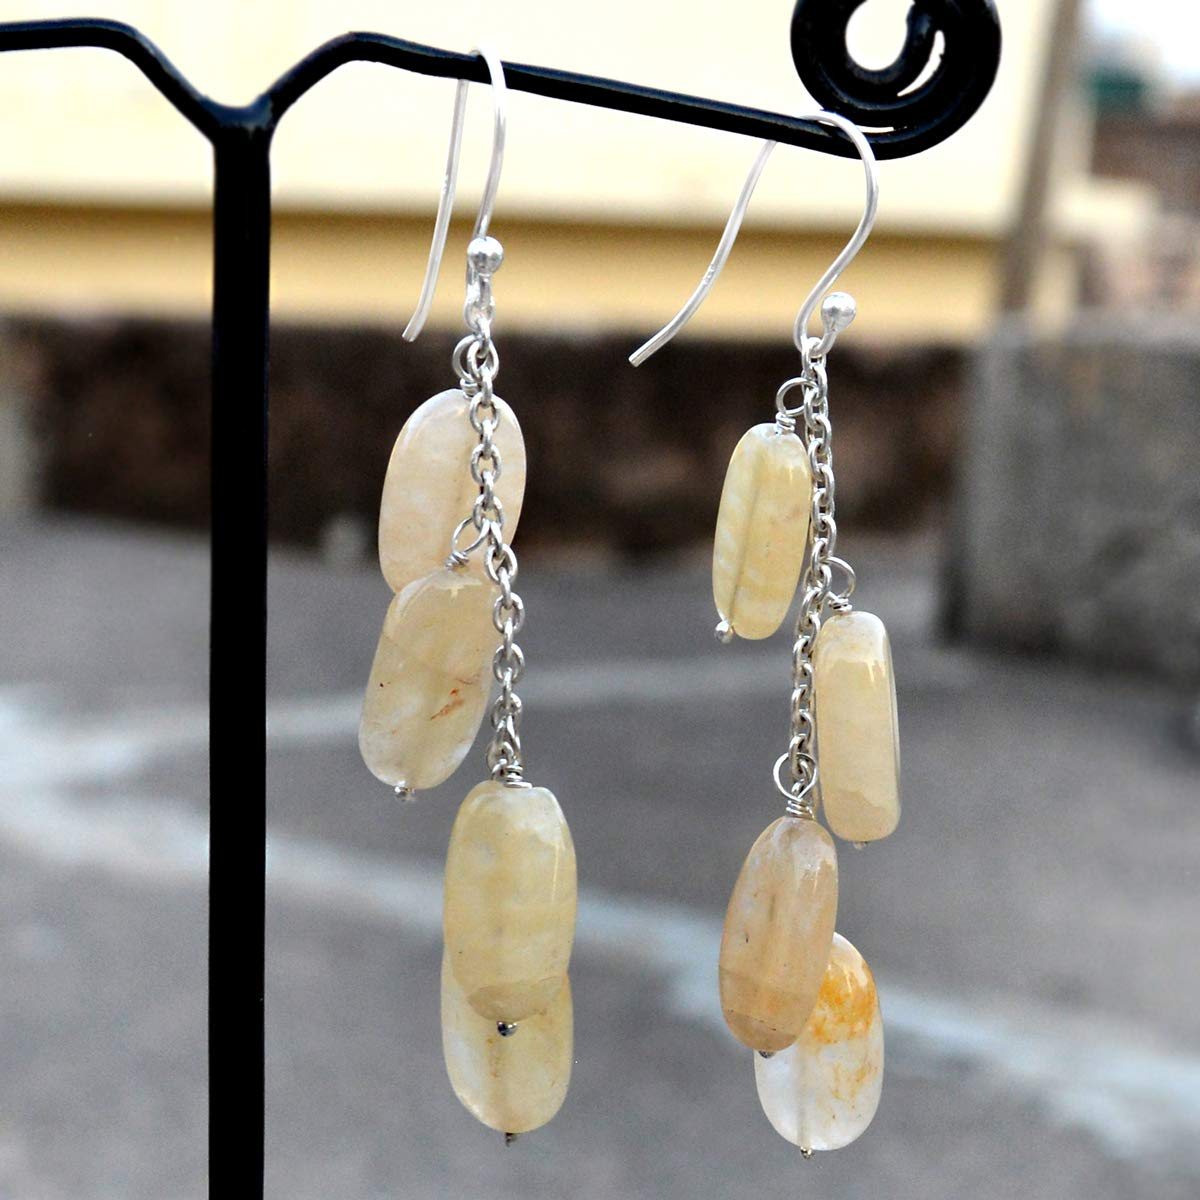 Dangle Chain Earring Jaipur Rajasthan India Handmade Jewelry Manufacturer 925 Sterling Silver Quartz Gemstone